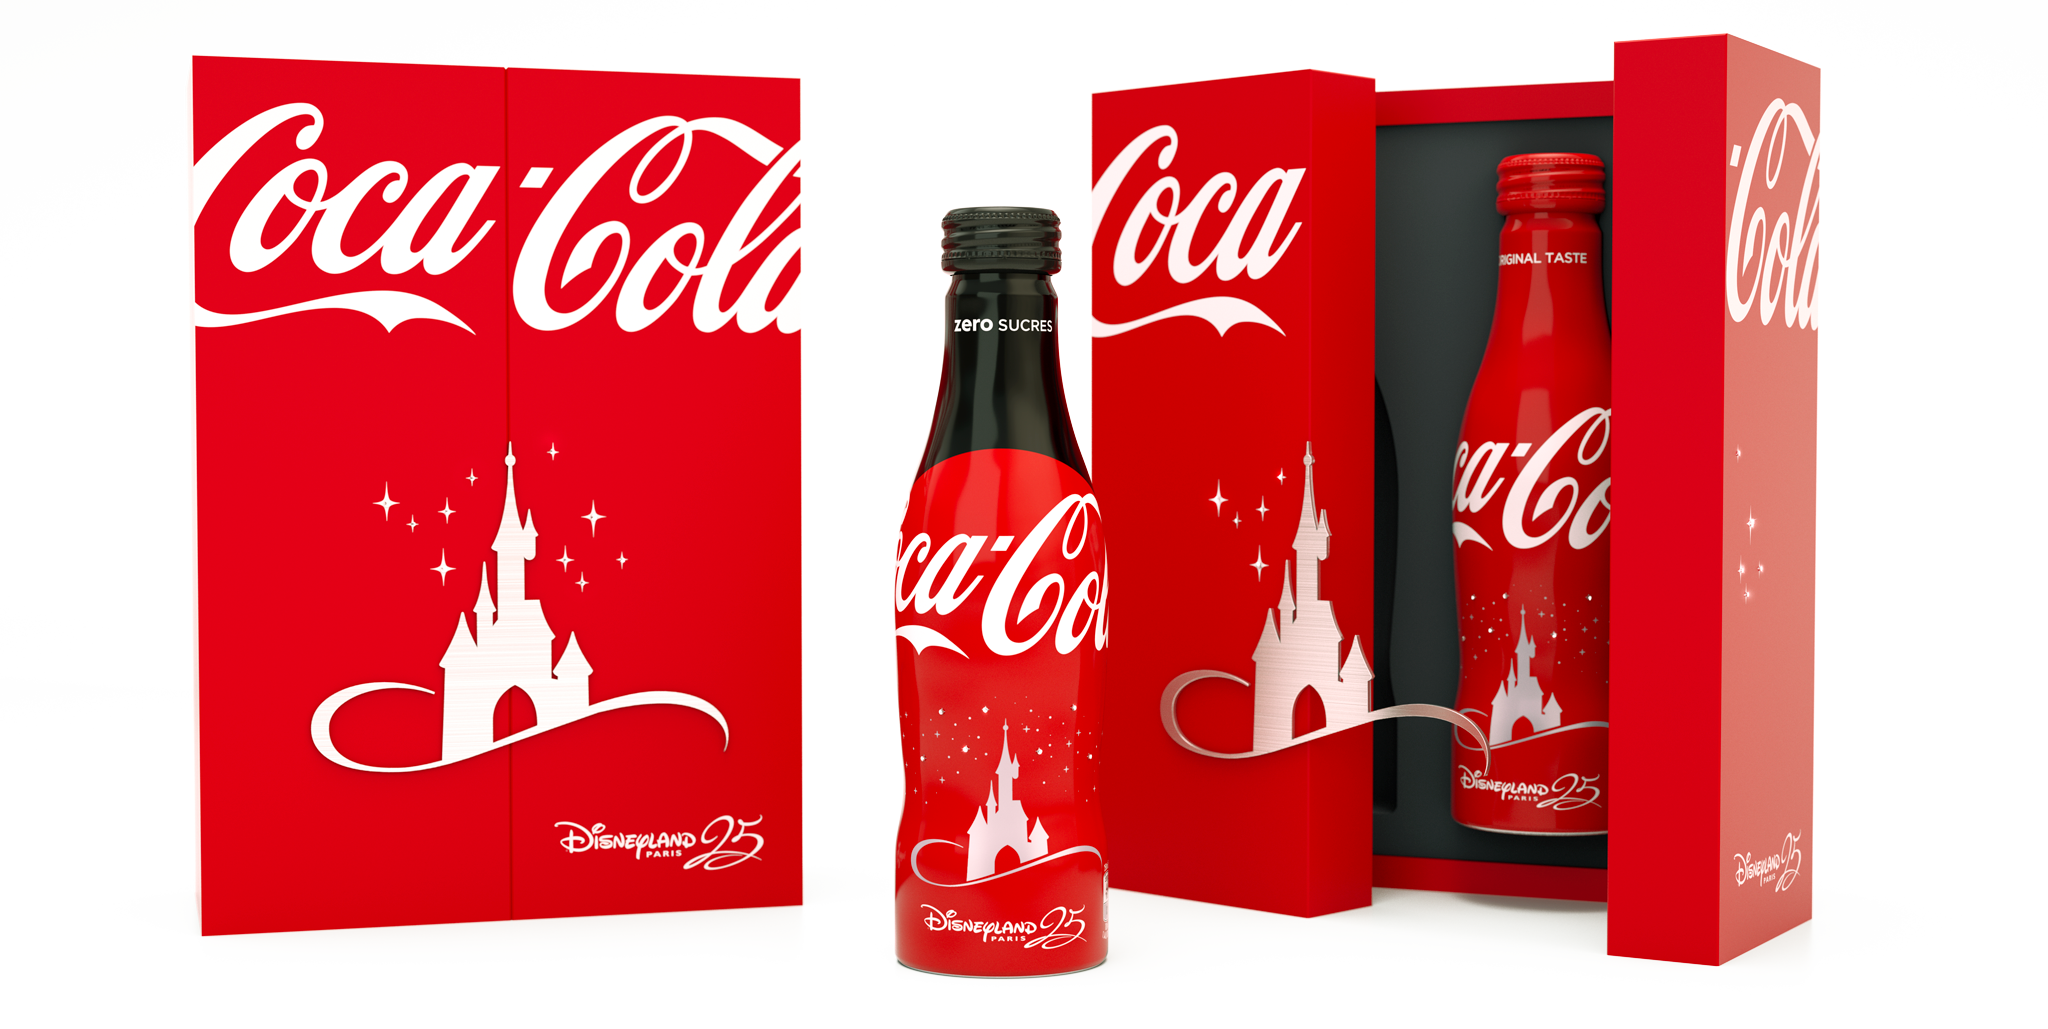 coca-cola-disneyland-paris-25-ans-birthday-design-coffret-folkr-03